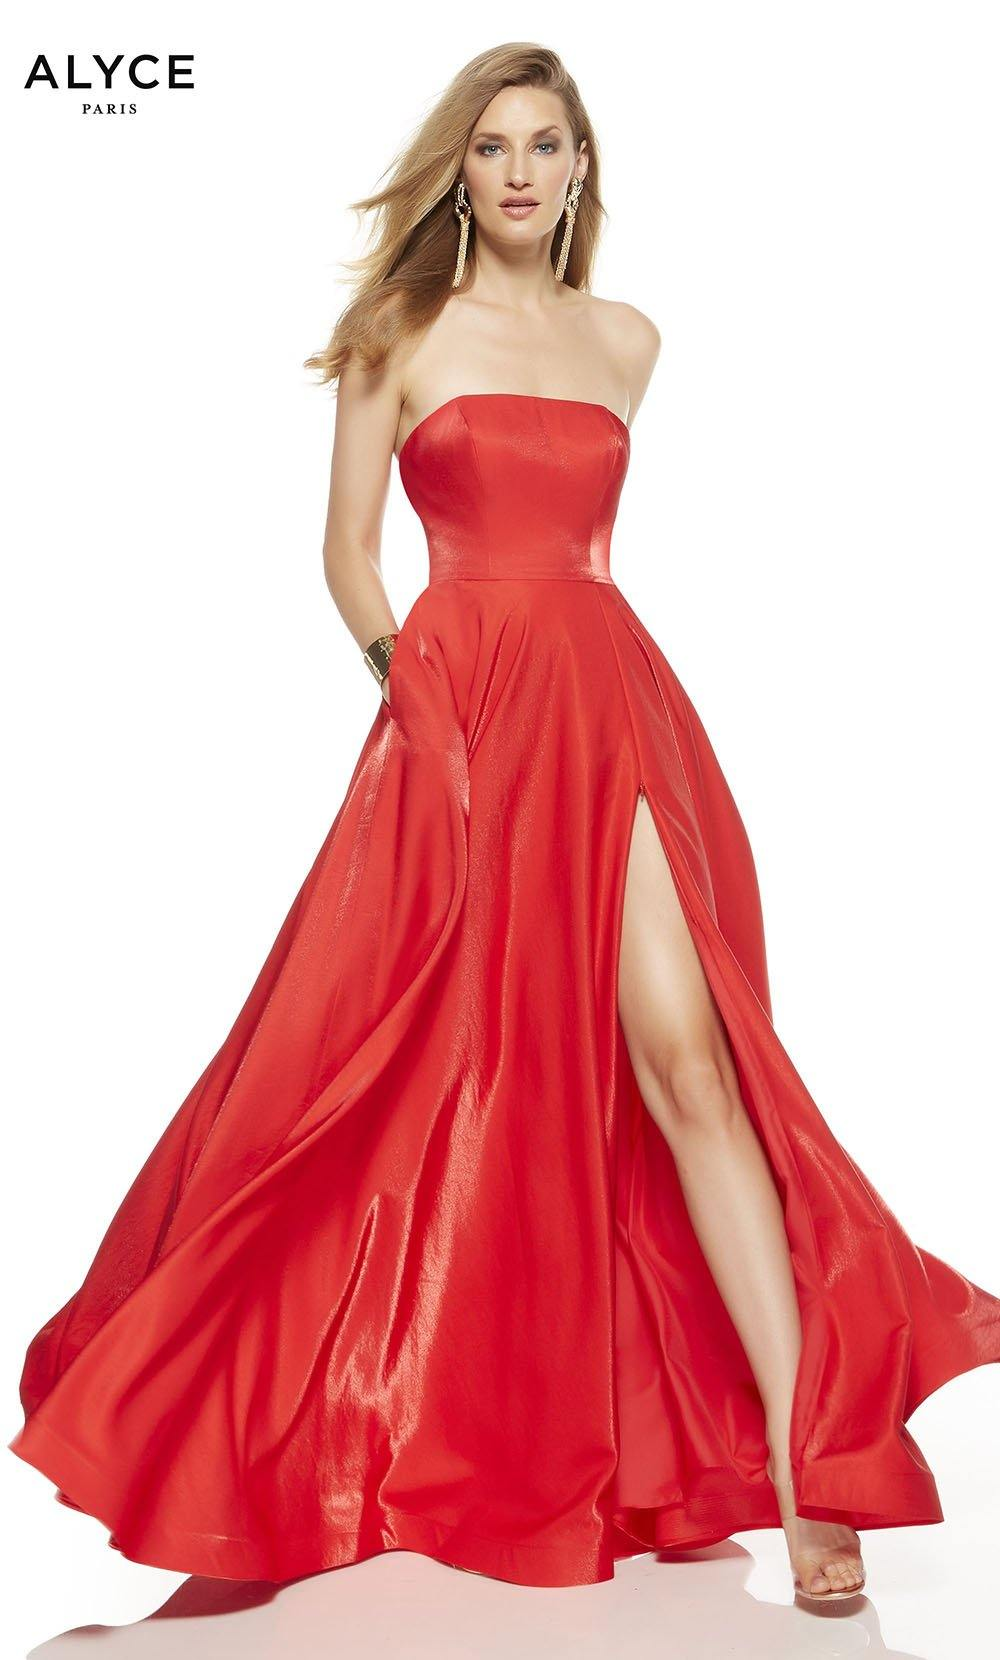 Lipstick Red strapless formal dress with a slit and pockets